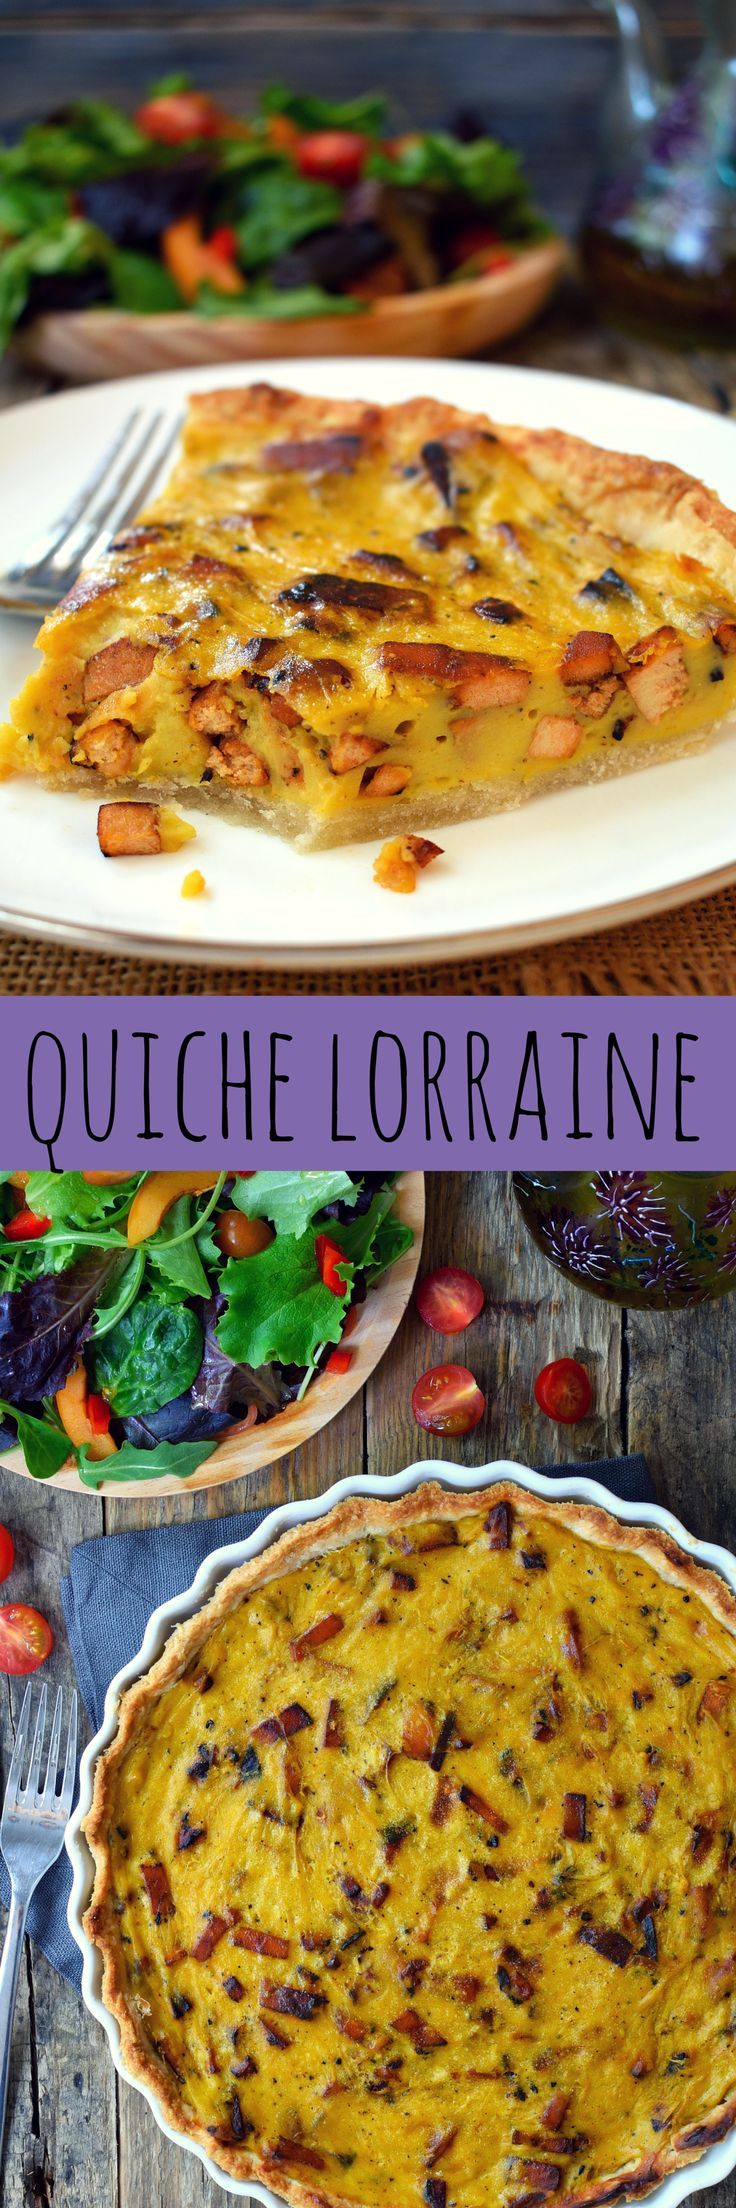 Vegan quiche Lorraine made from chickpea flour and smoky tofu bacon. Deliciously savory and satisfying and great for a Sunday brunch.